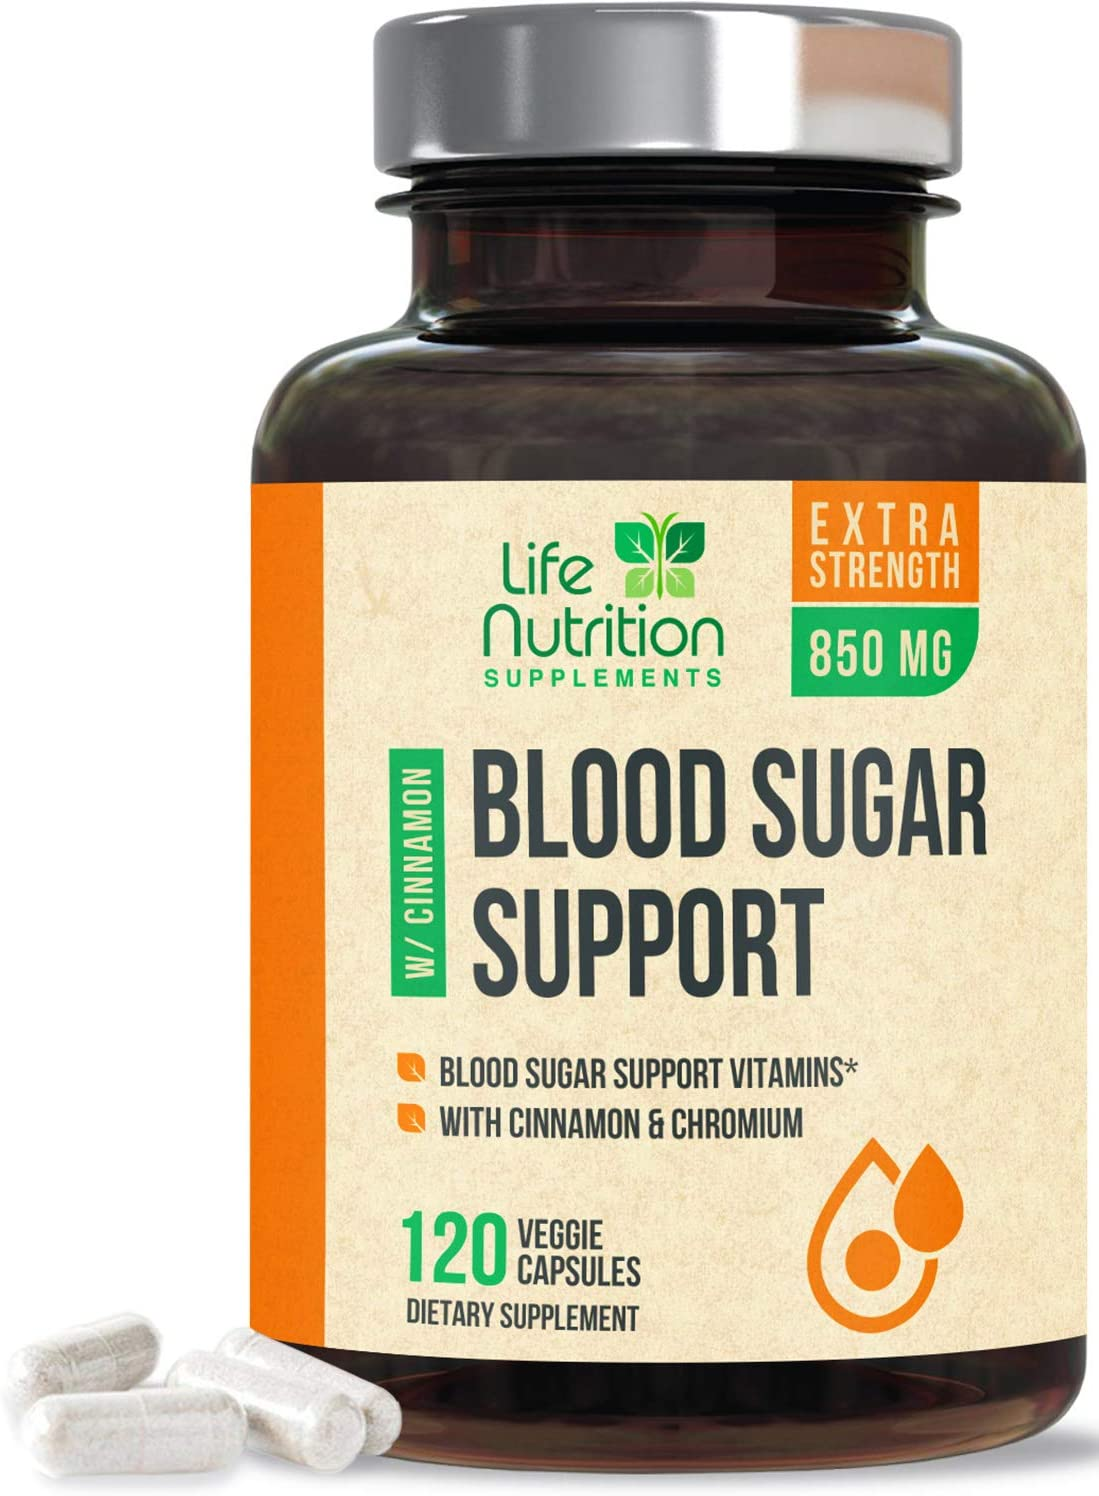 Blood Sugar Support Supplement Extra Strength Glucose Support 1197mg - Made in USA - Best Vegan Multivitamin Blend with Cinnamon, Chromium, Bitter Melon & Alpha Lipoic Acid - 120 Capsules